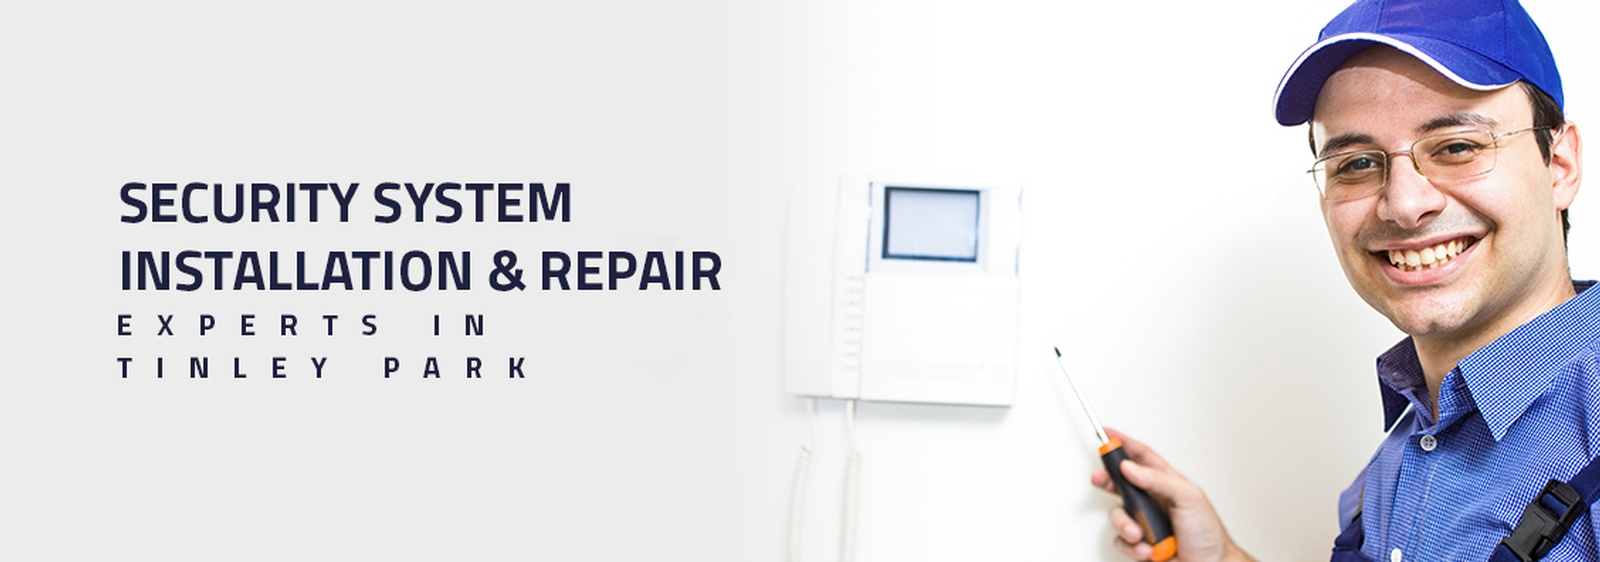 Security System Installation & Repair Experts in Tinley Park